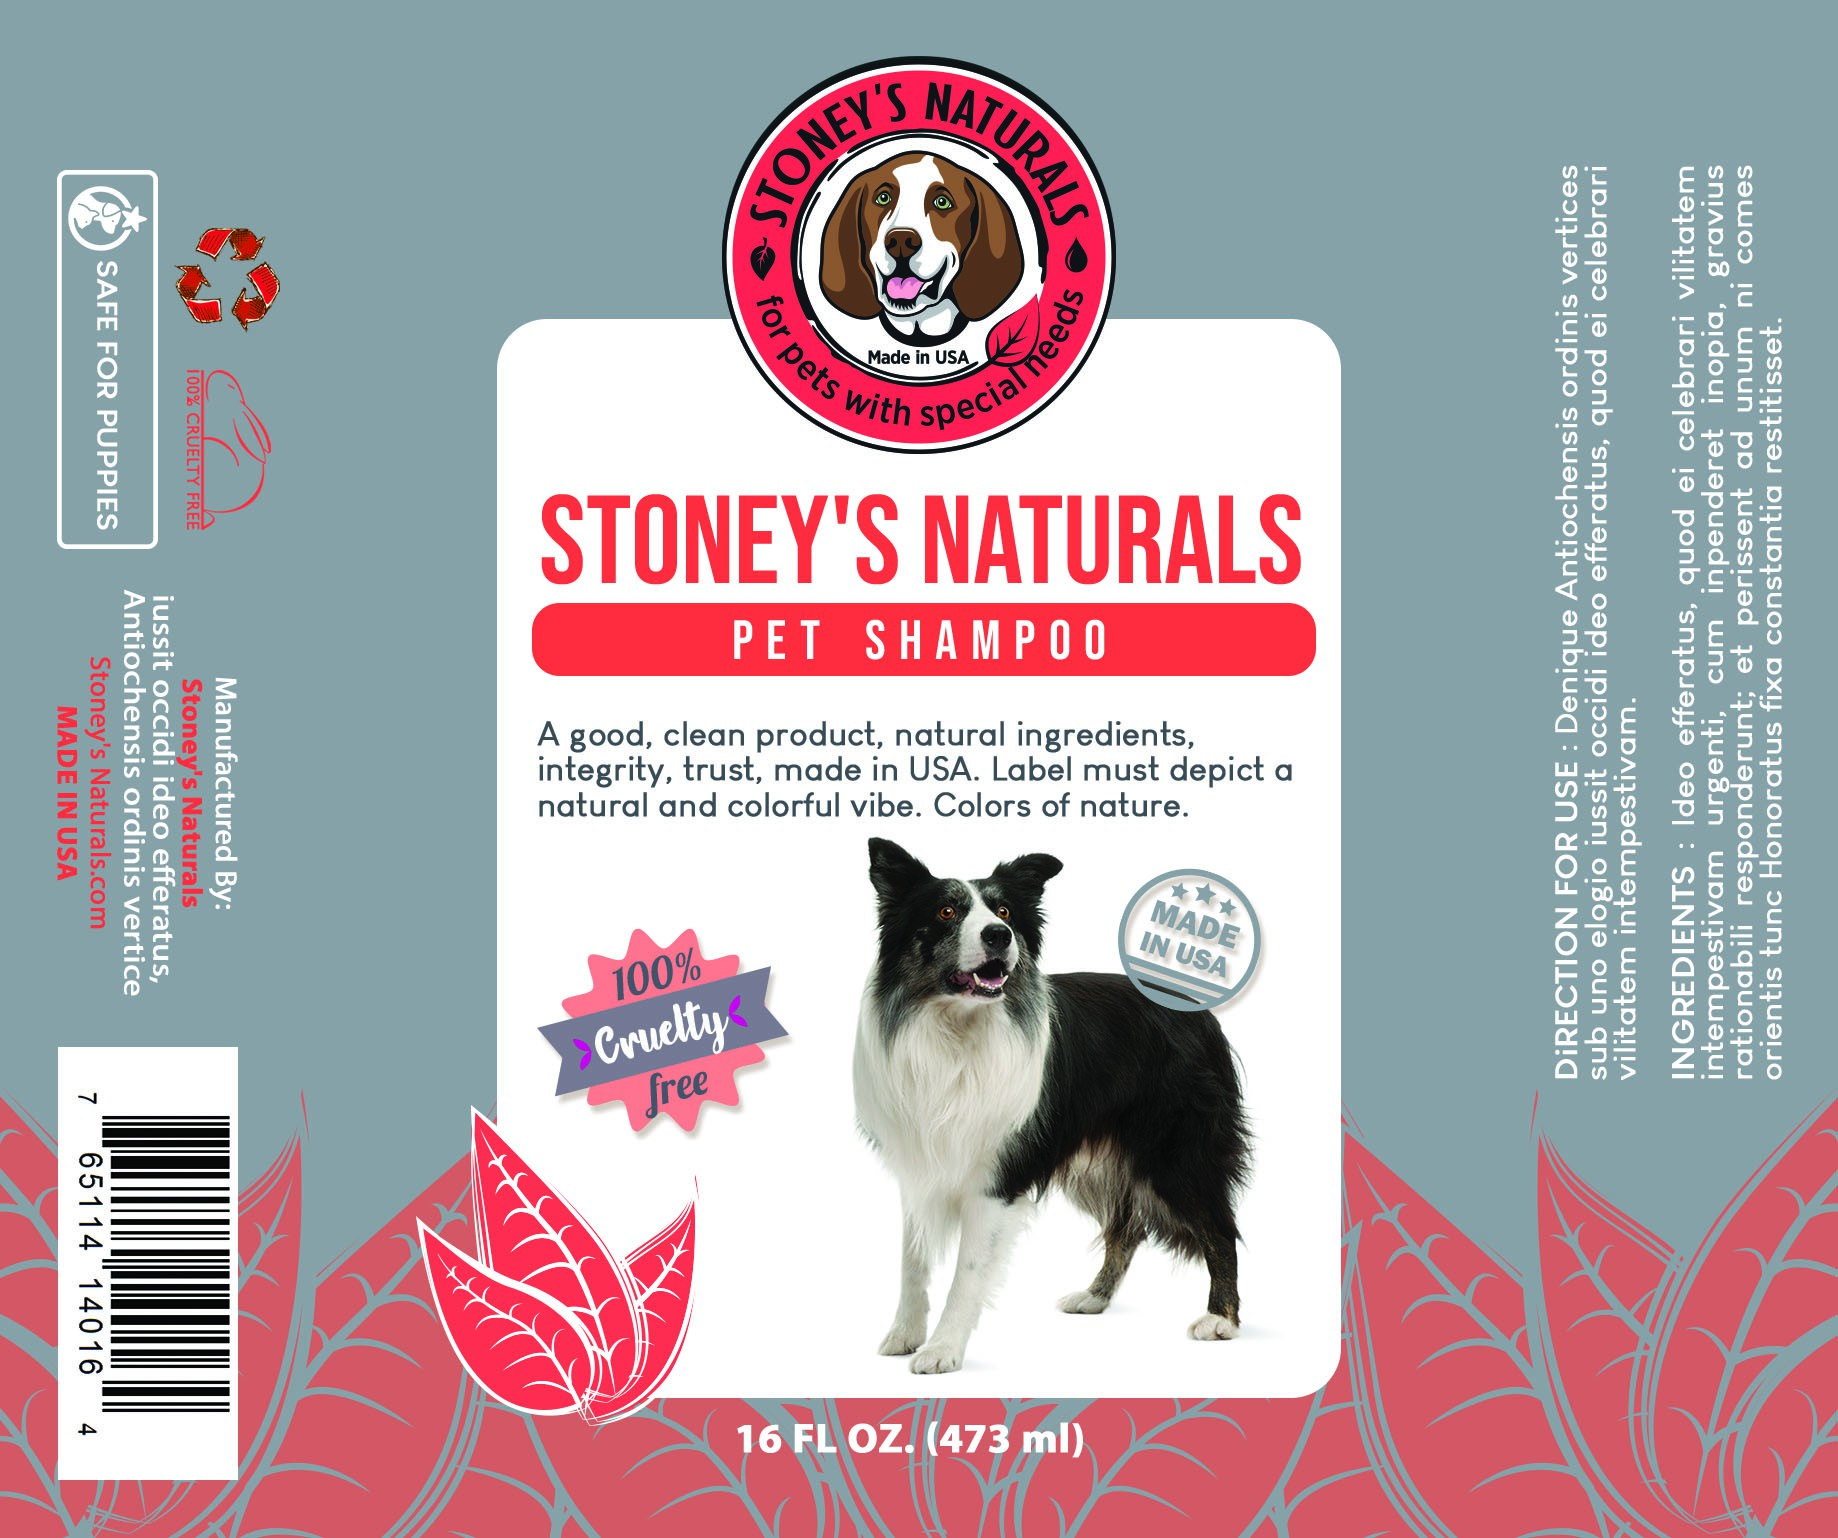 Eye catching pet shampoo product label